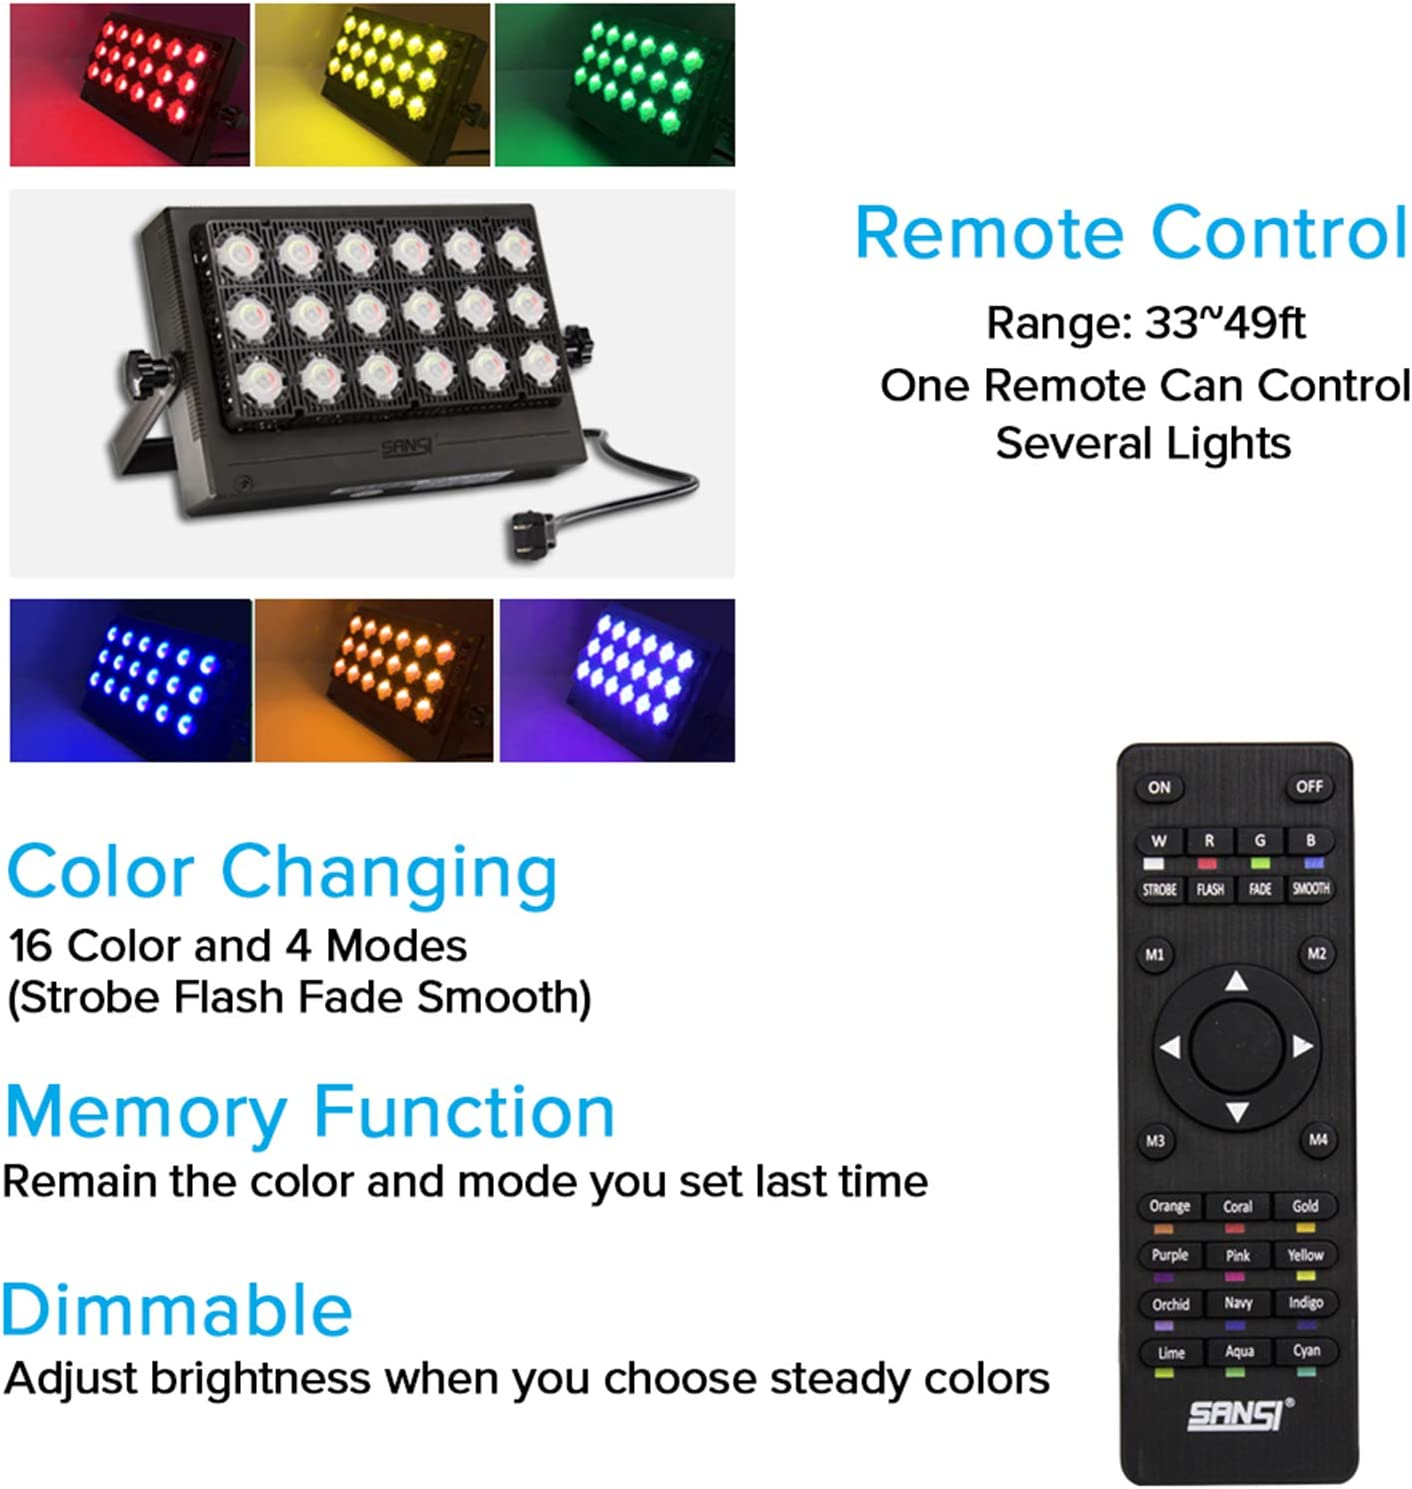 Sansi 100w Rgb Led Flood Light With Plug 16 Colors 4 Modes Color Changing Dimmable Decorative Party Stage Landscape Light With Remote Control Ip66 Waterproof Super Bright Led Security Ac100 240v Amazon Com